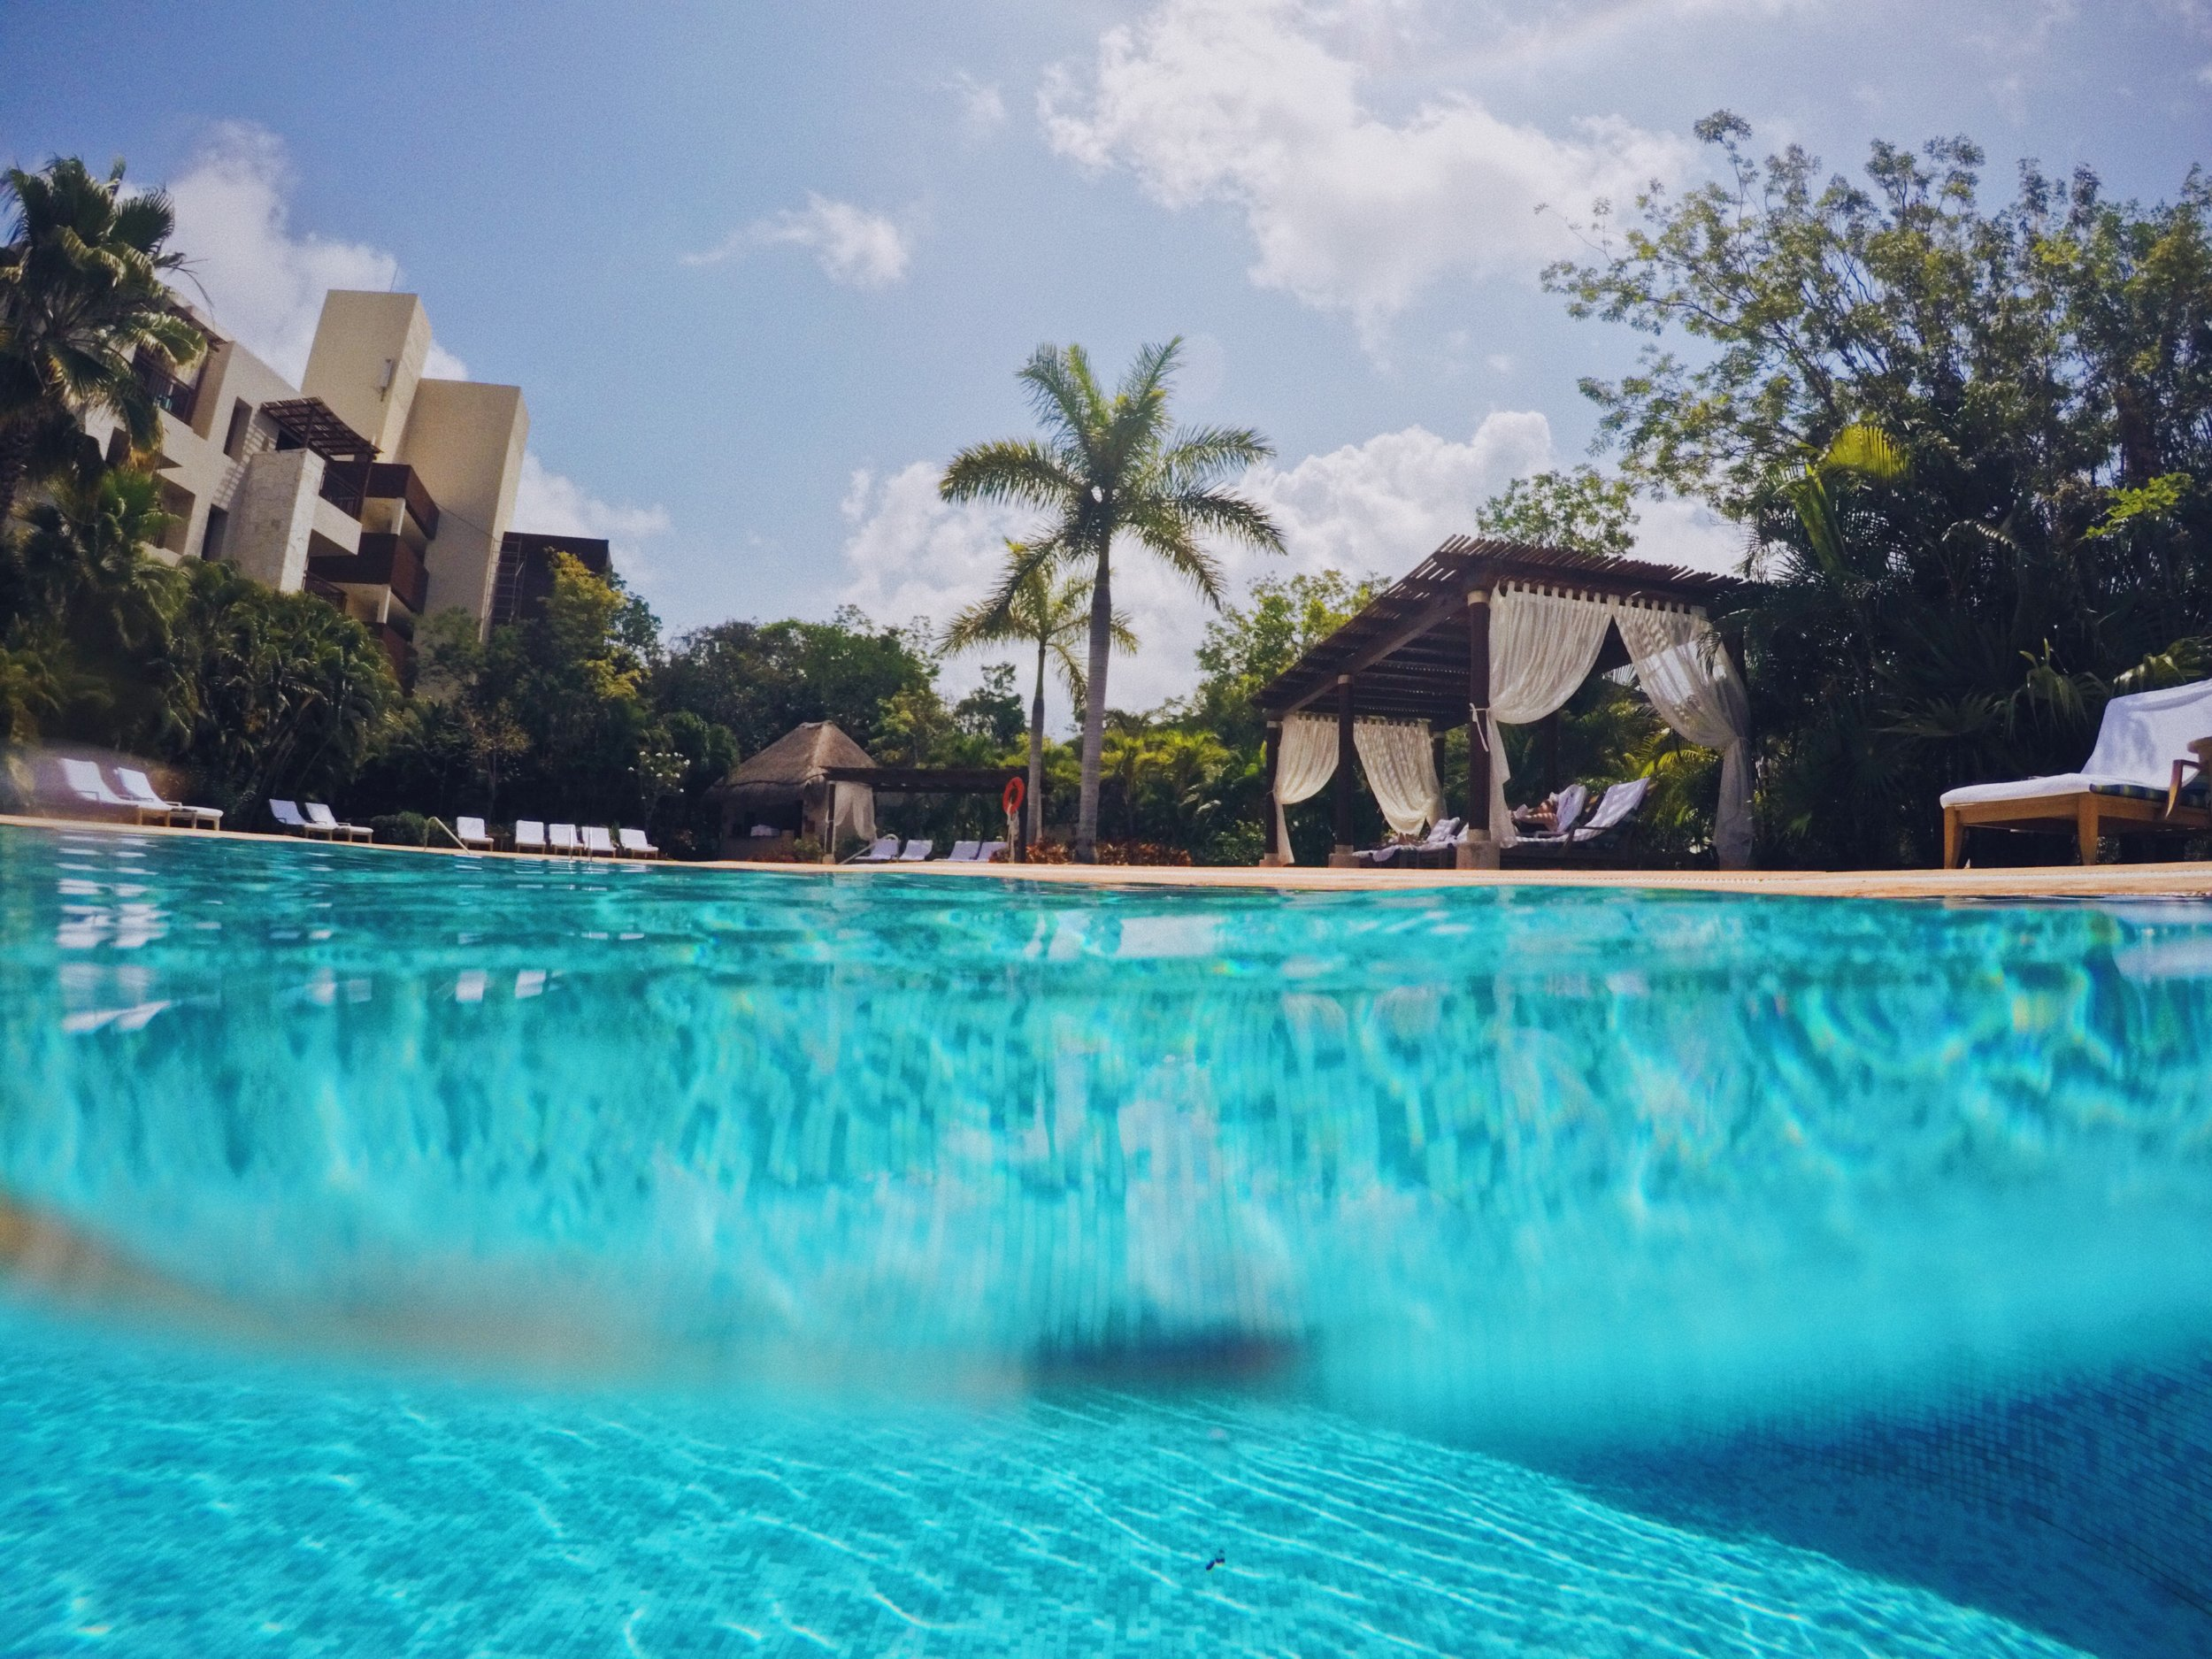 My trip to Fairmont Mayakoba Resort in Mexico | a review of my stay at this 5-star luxury resort in riviera maya mexico. #TravelGuide #omandthecity #FairmontMayakoba #MexicoResort